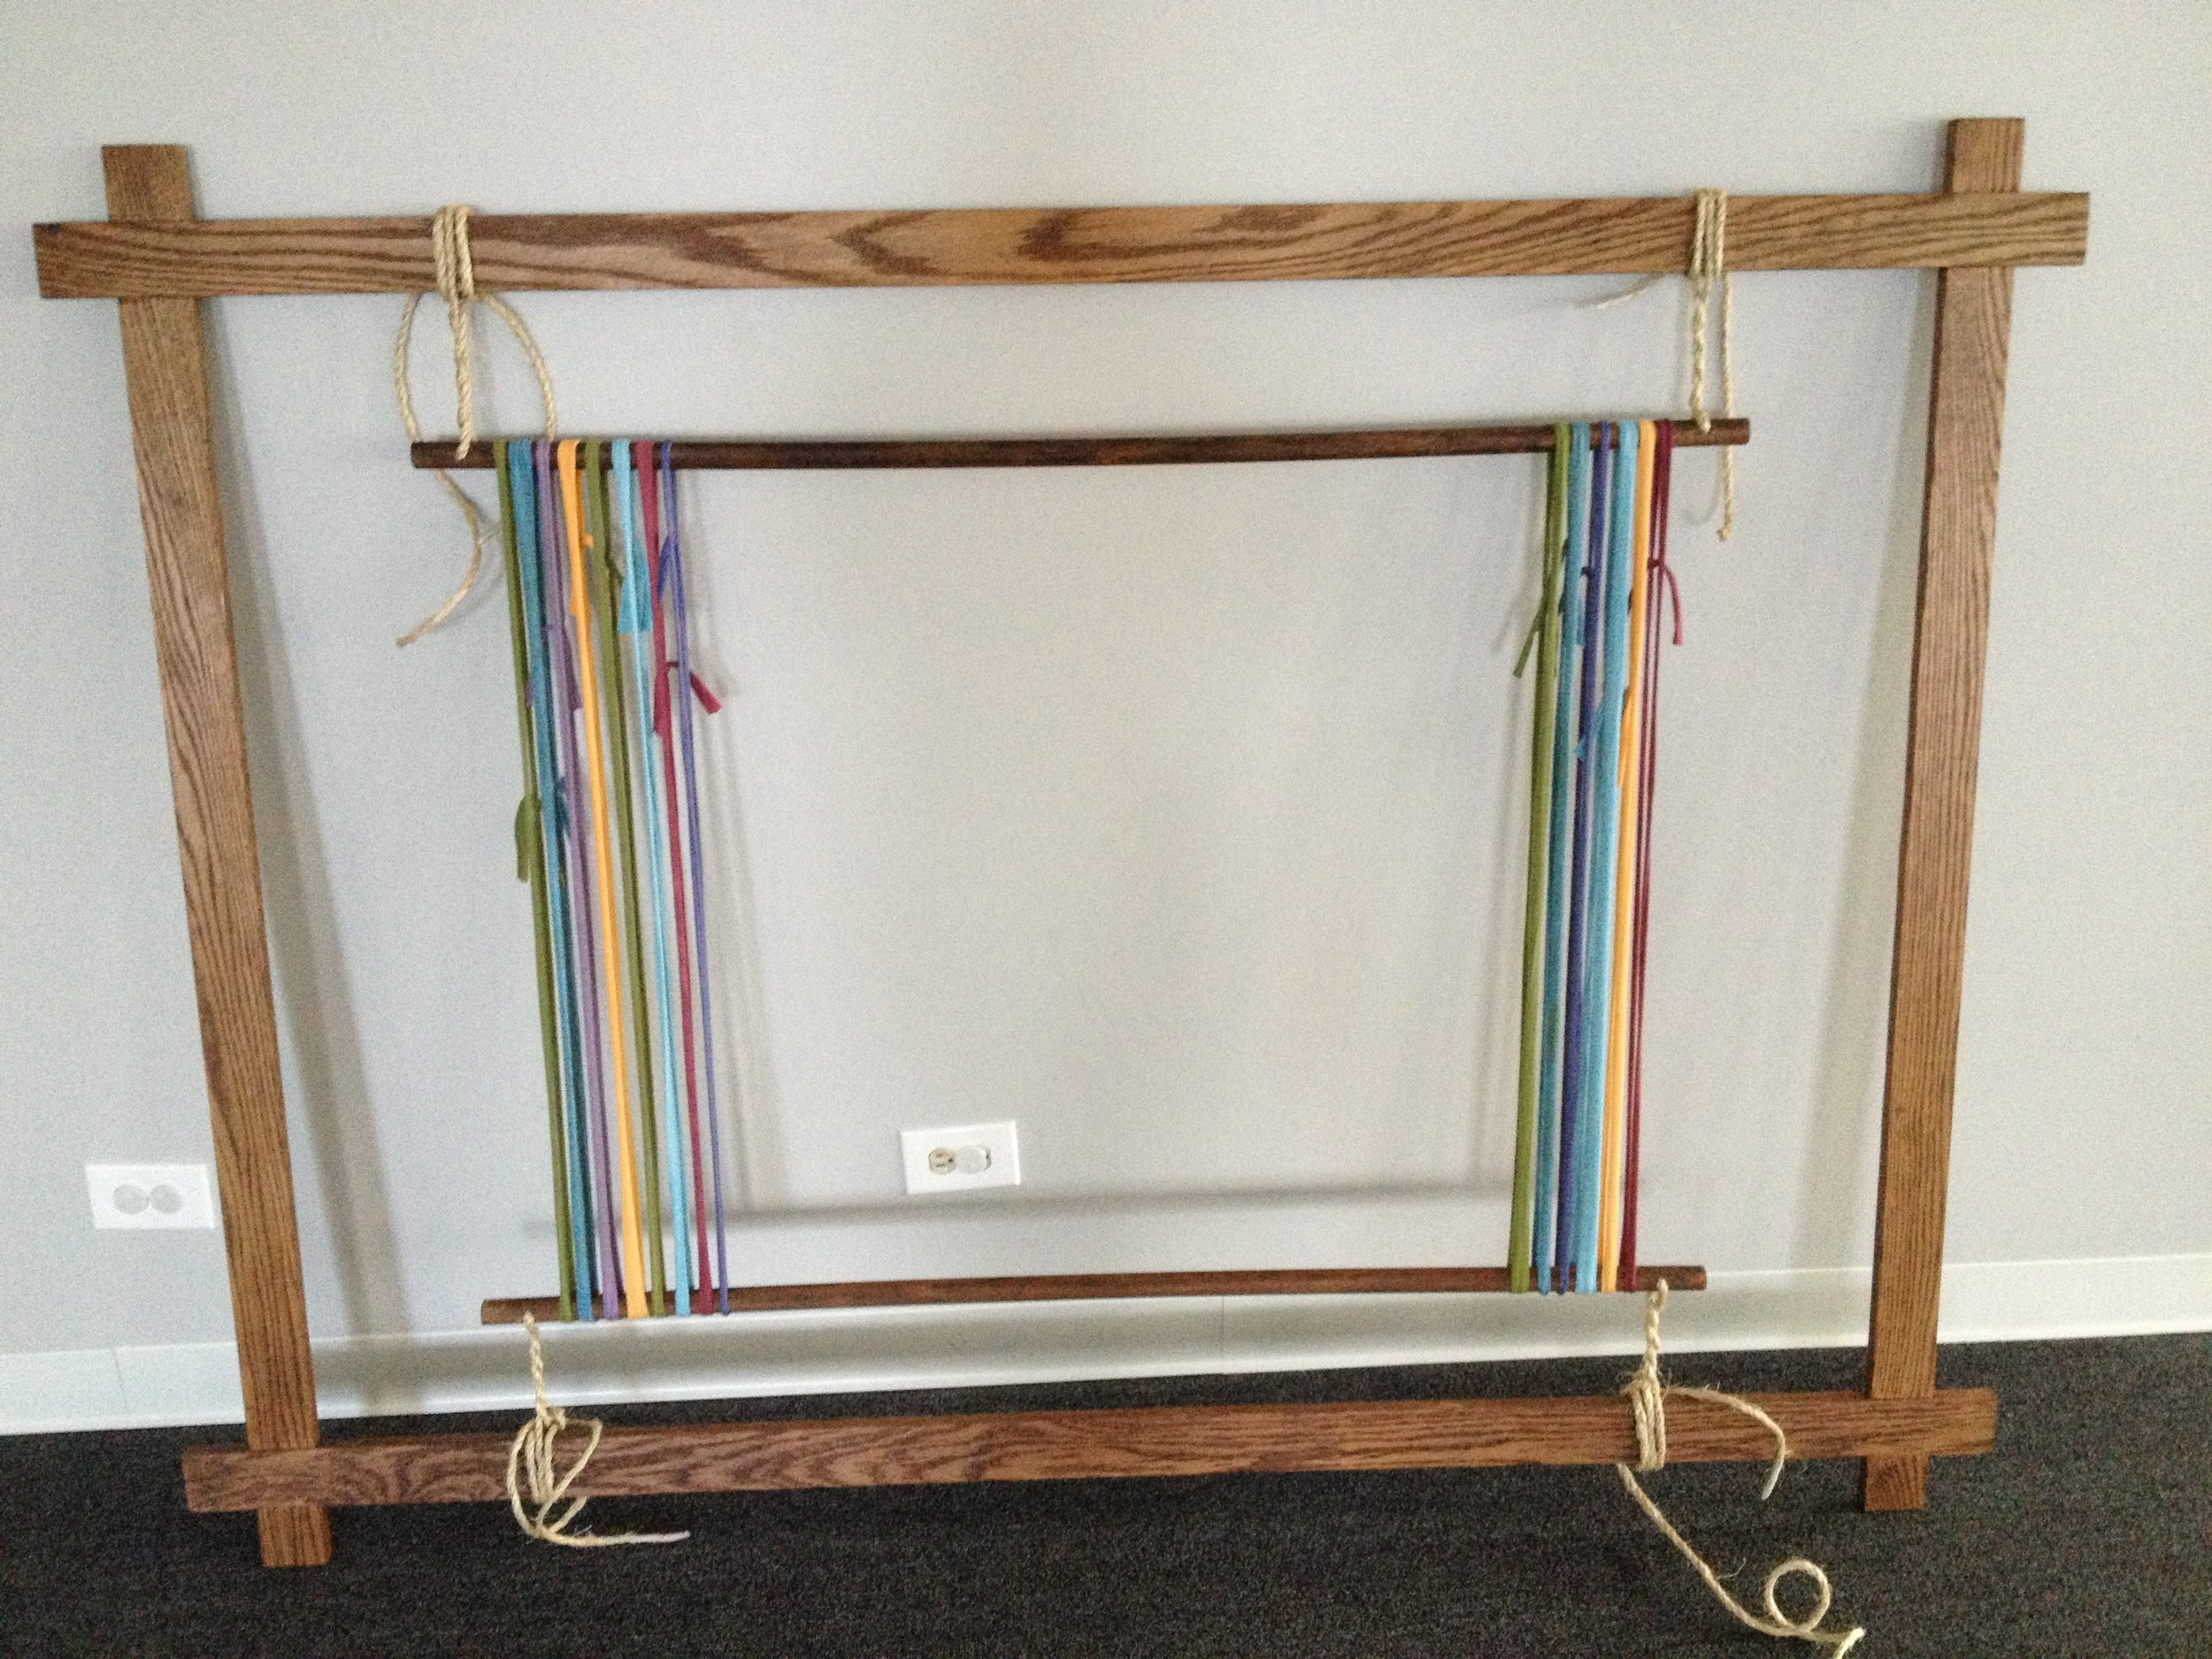 This was my first execution of my concept of a loom wall hanging. I can't believe looking at it now that I hand tooled those joints. I had to take care of a baby part way through and Nate finished them for me. Not much has changed there.